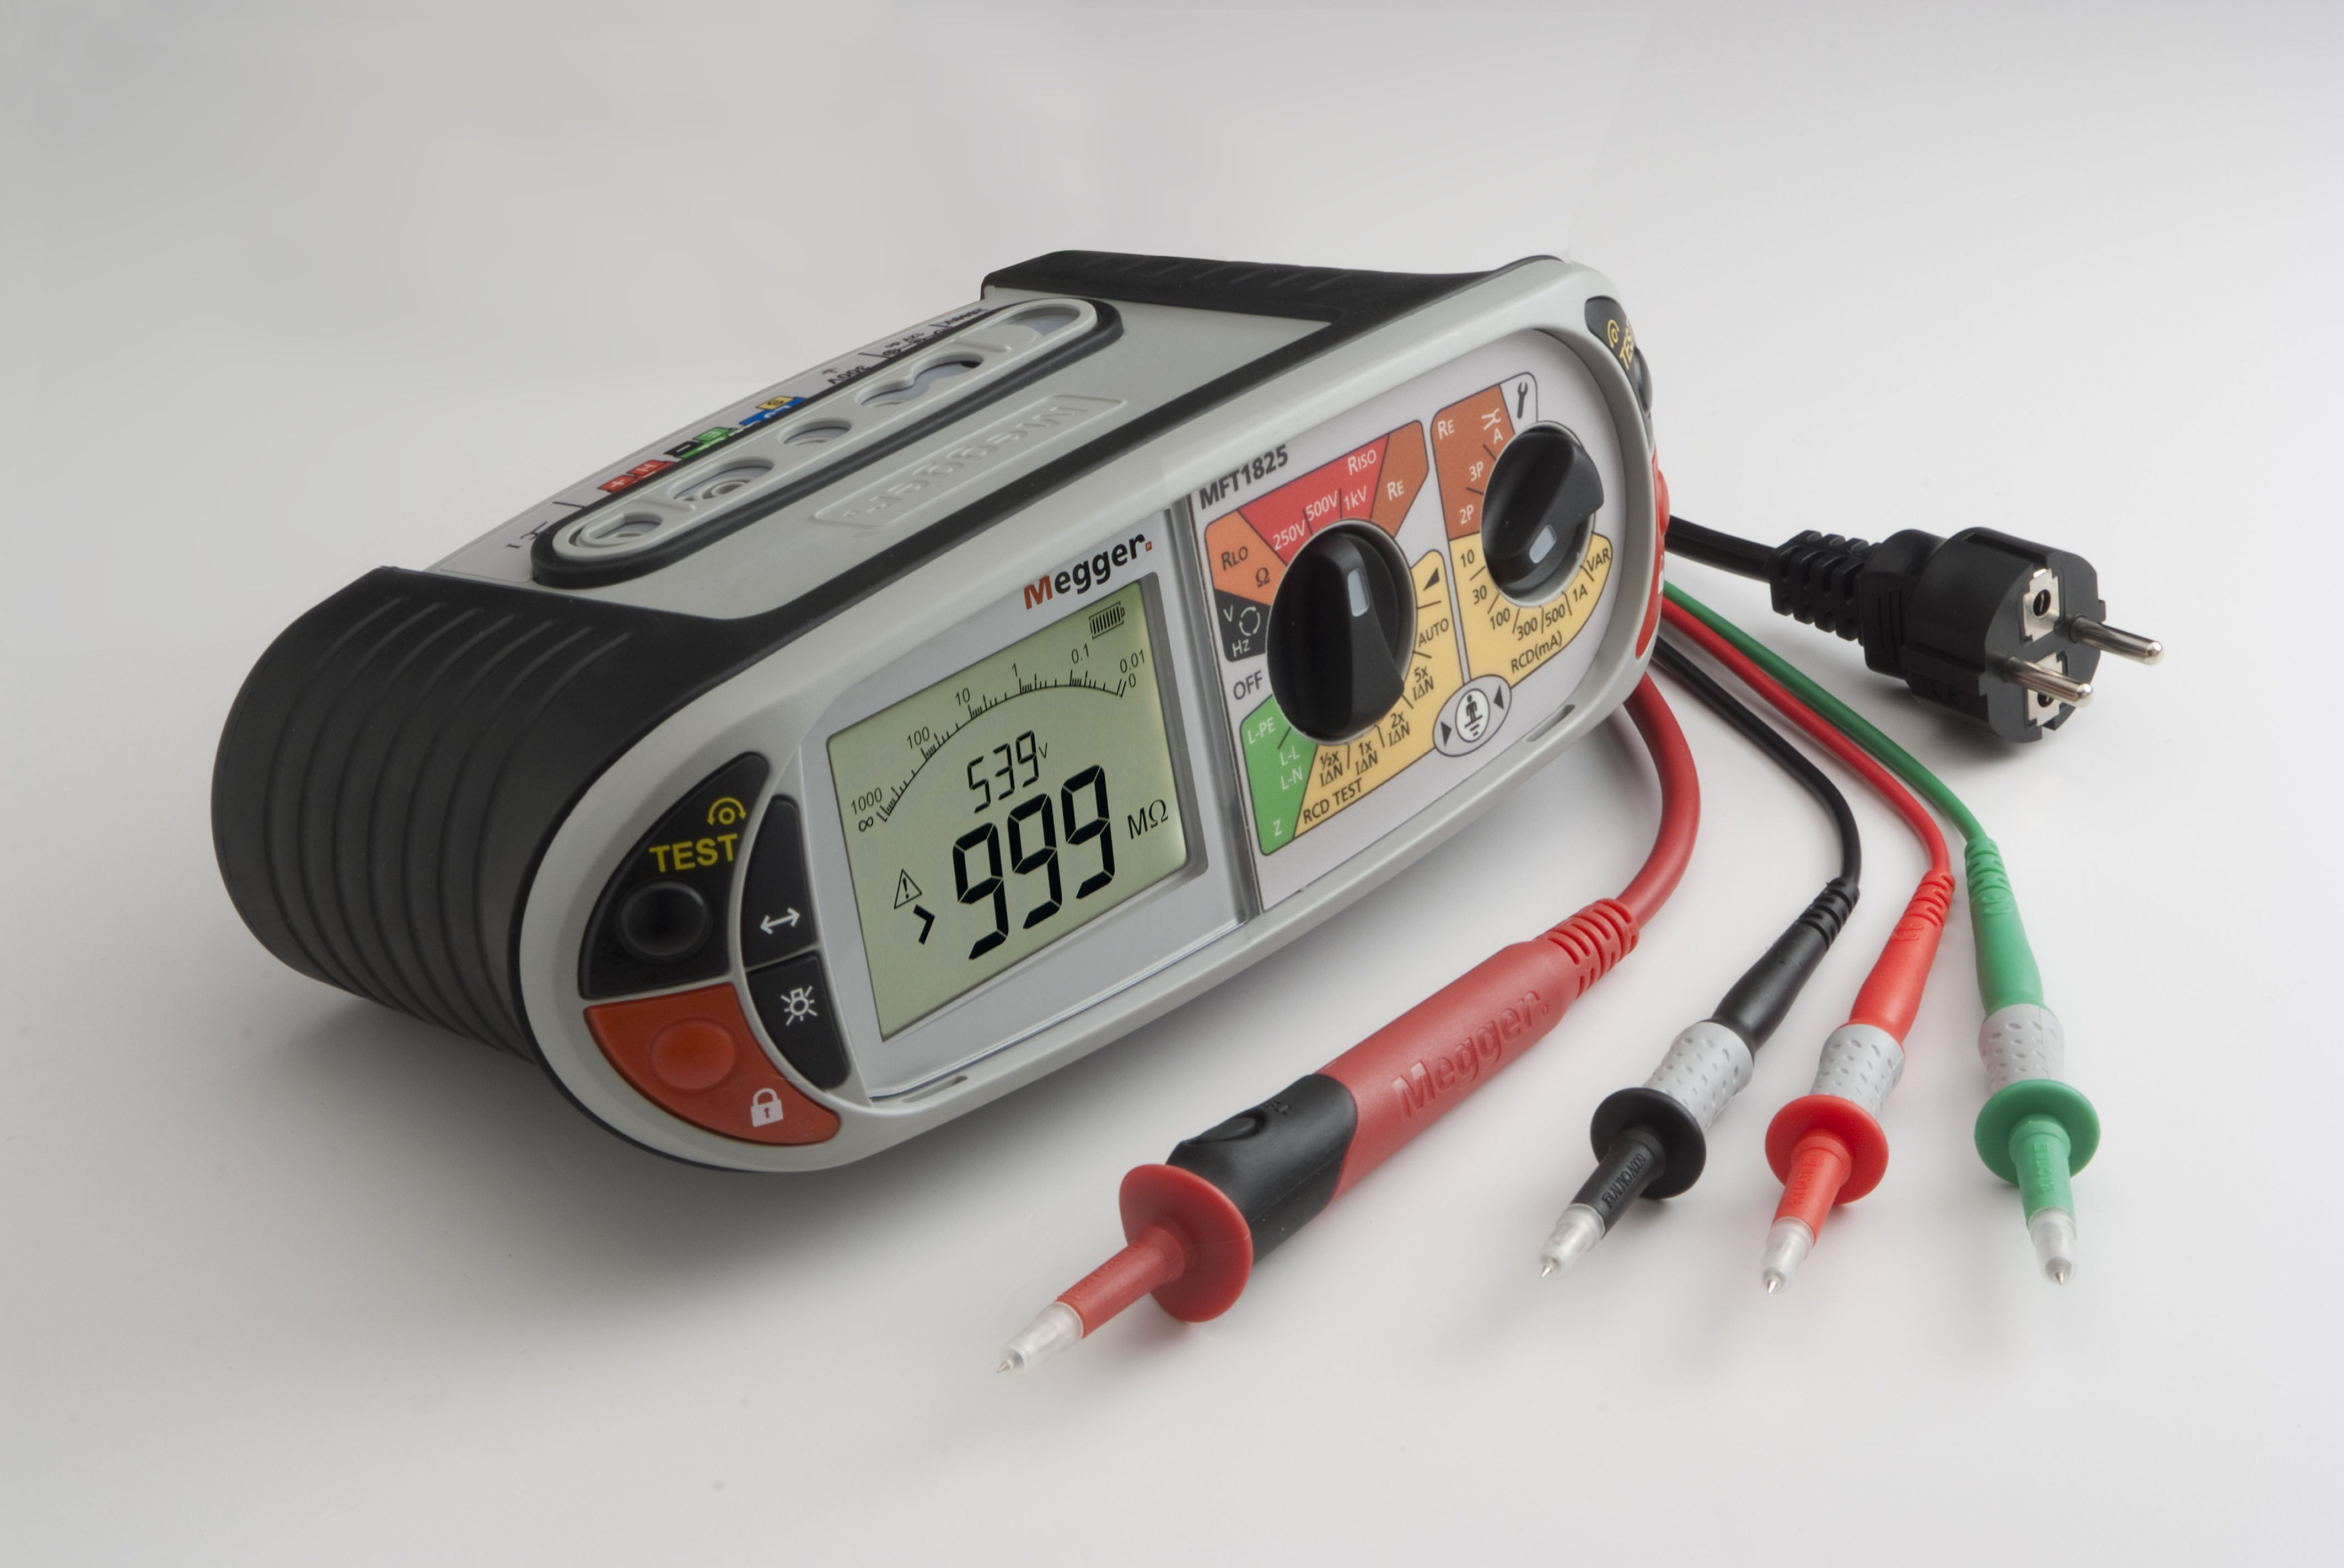 Megger Mft1825 Multifunction Tester For Checking And Certifying Electrical Installations To European Wiring Re Electrical Installation Installation Electricity